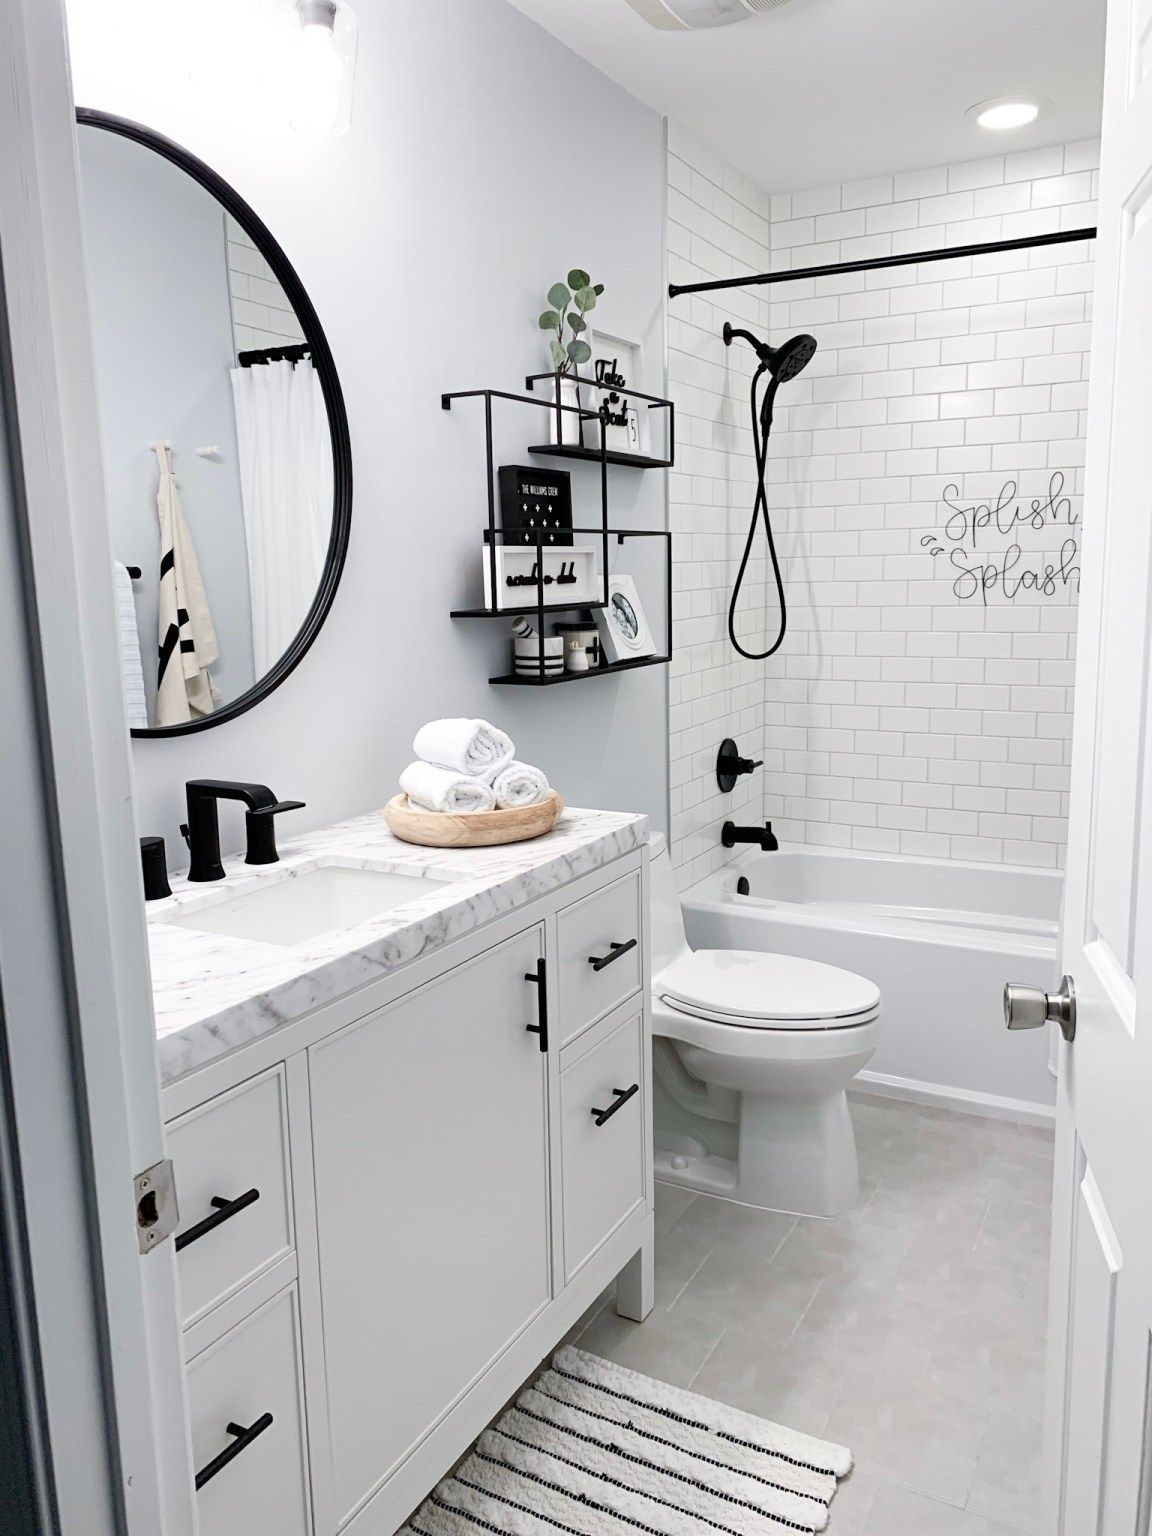 Hallway Bathroom Facelift Champagne Chaos In 2020 Small Bathroom Decor Bathroom Interior Small Bathroom Remodel